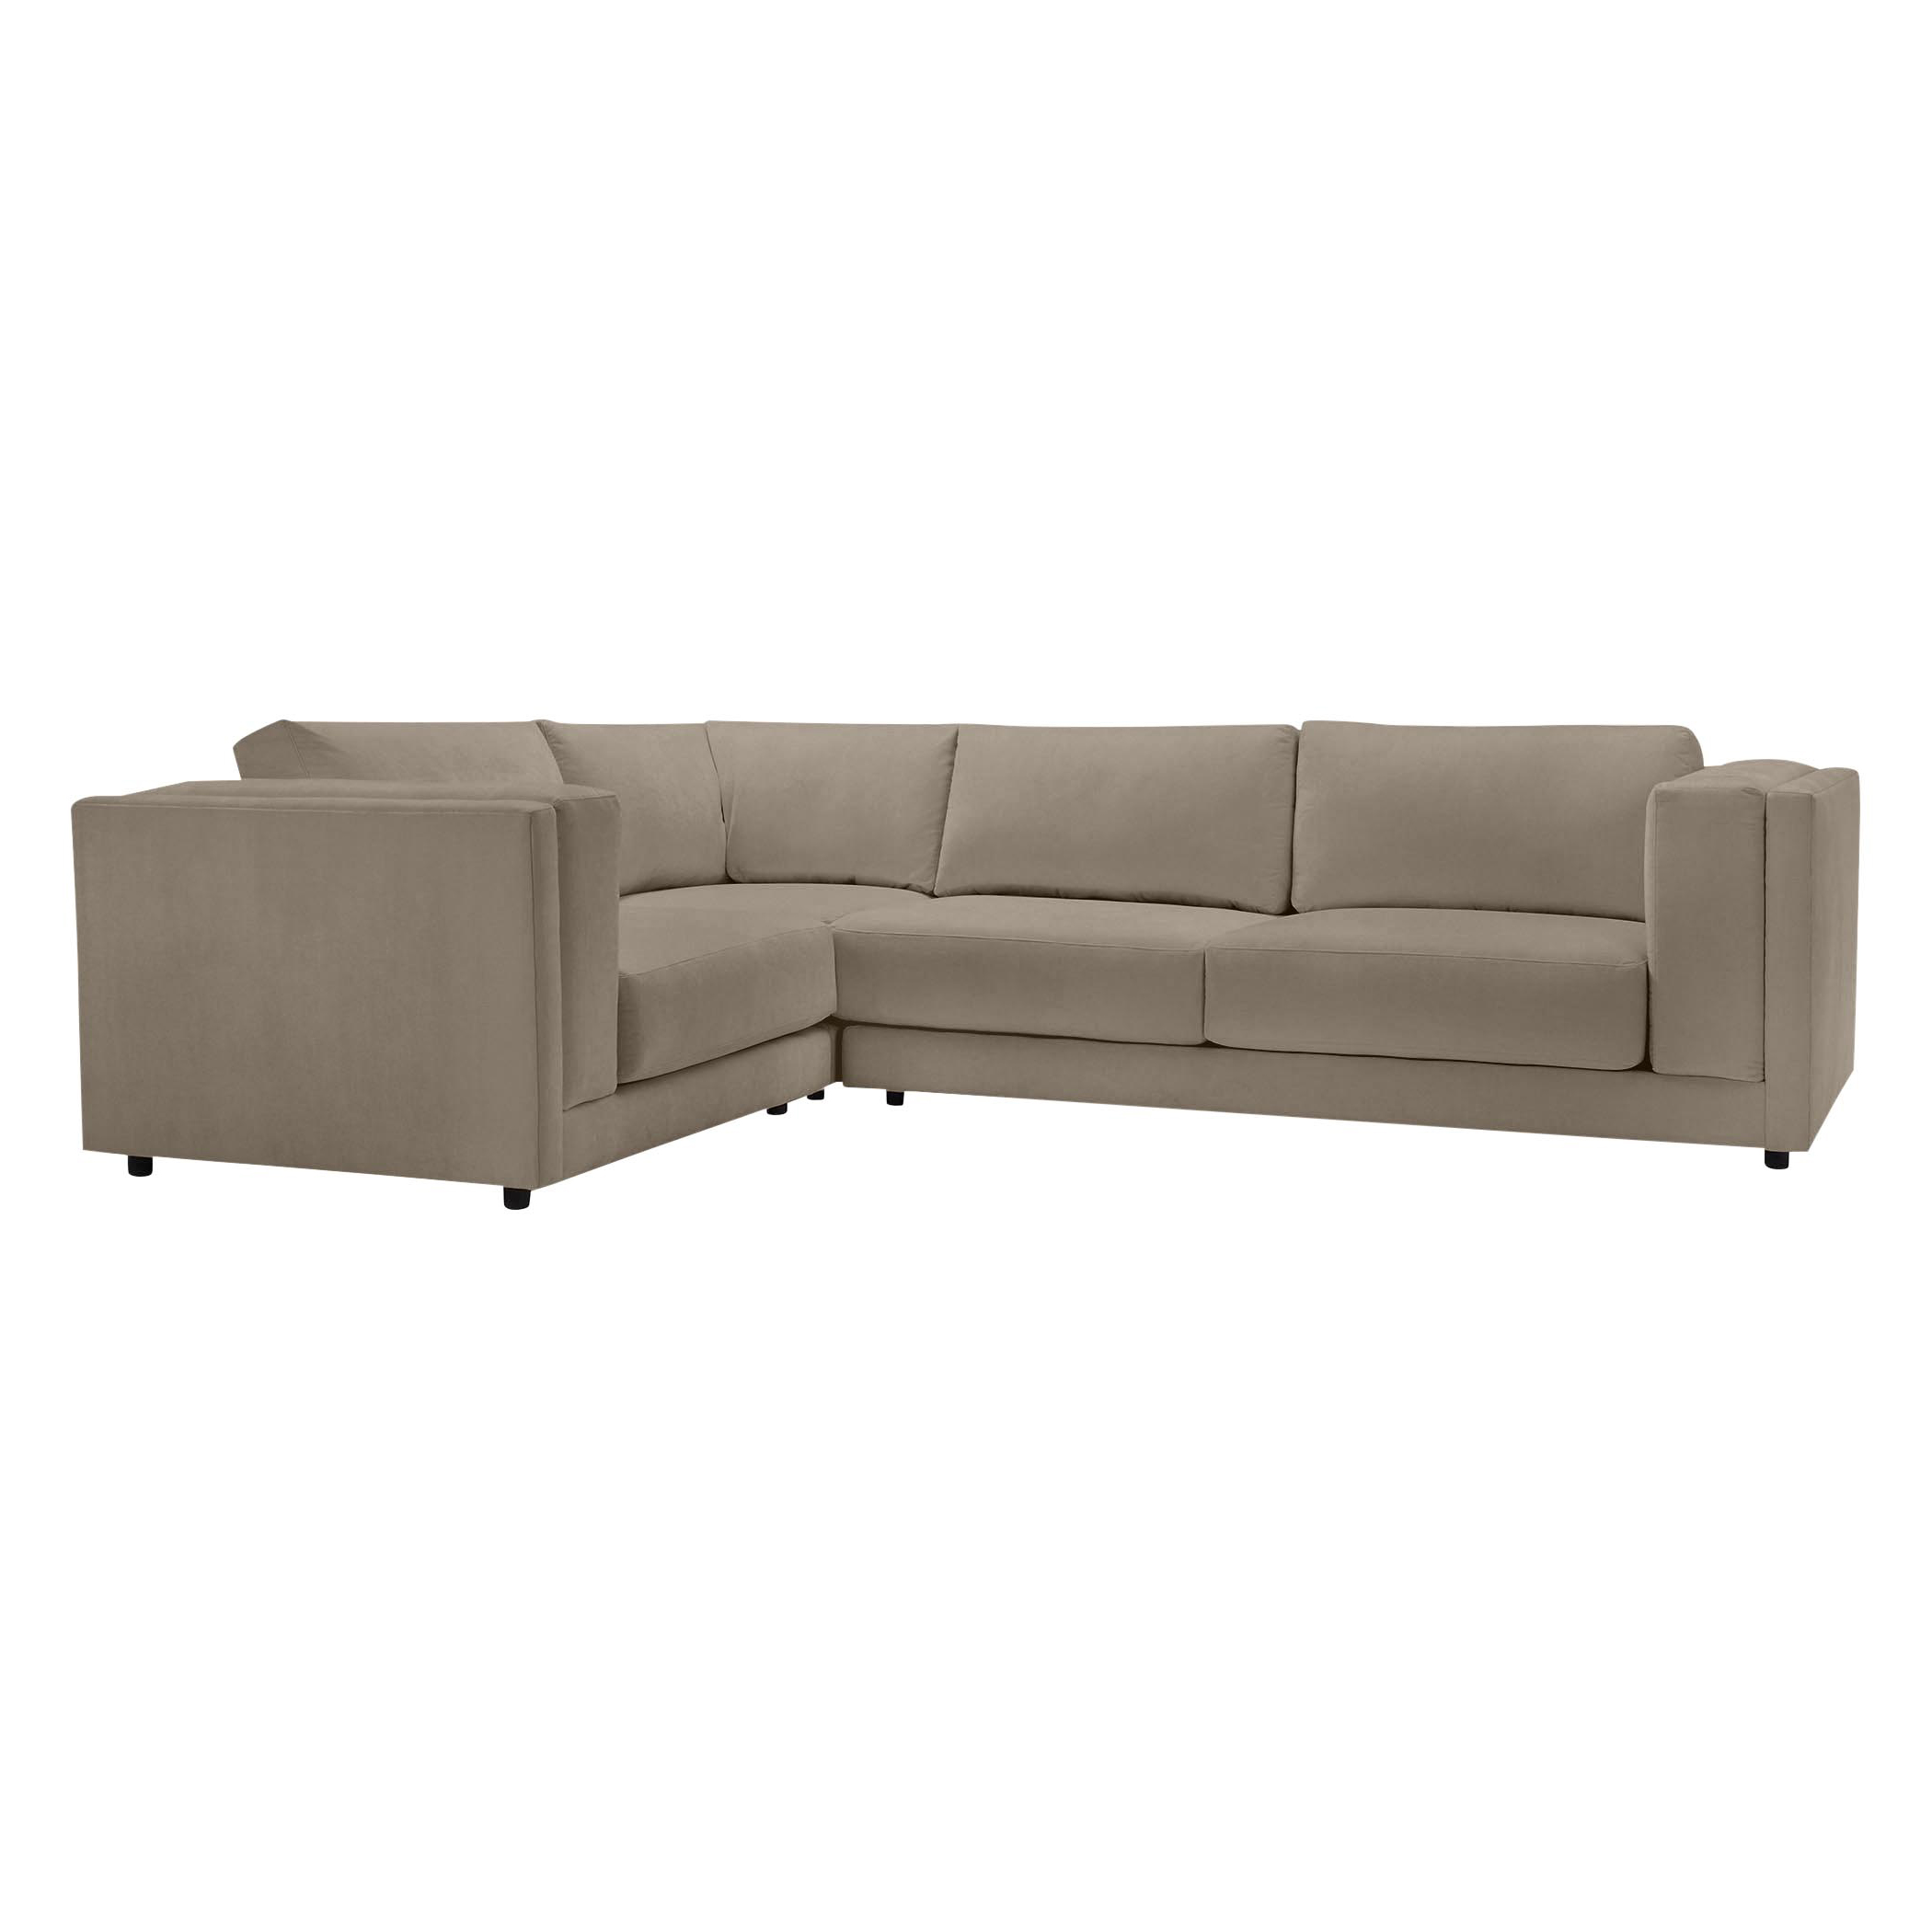 Celine Sectional - 3 PC